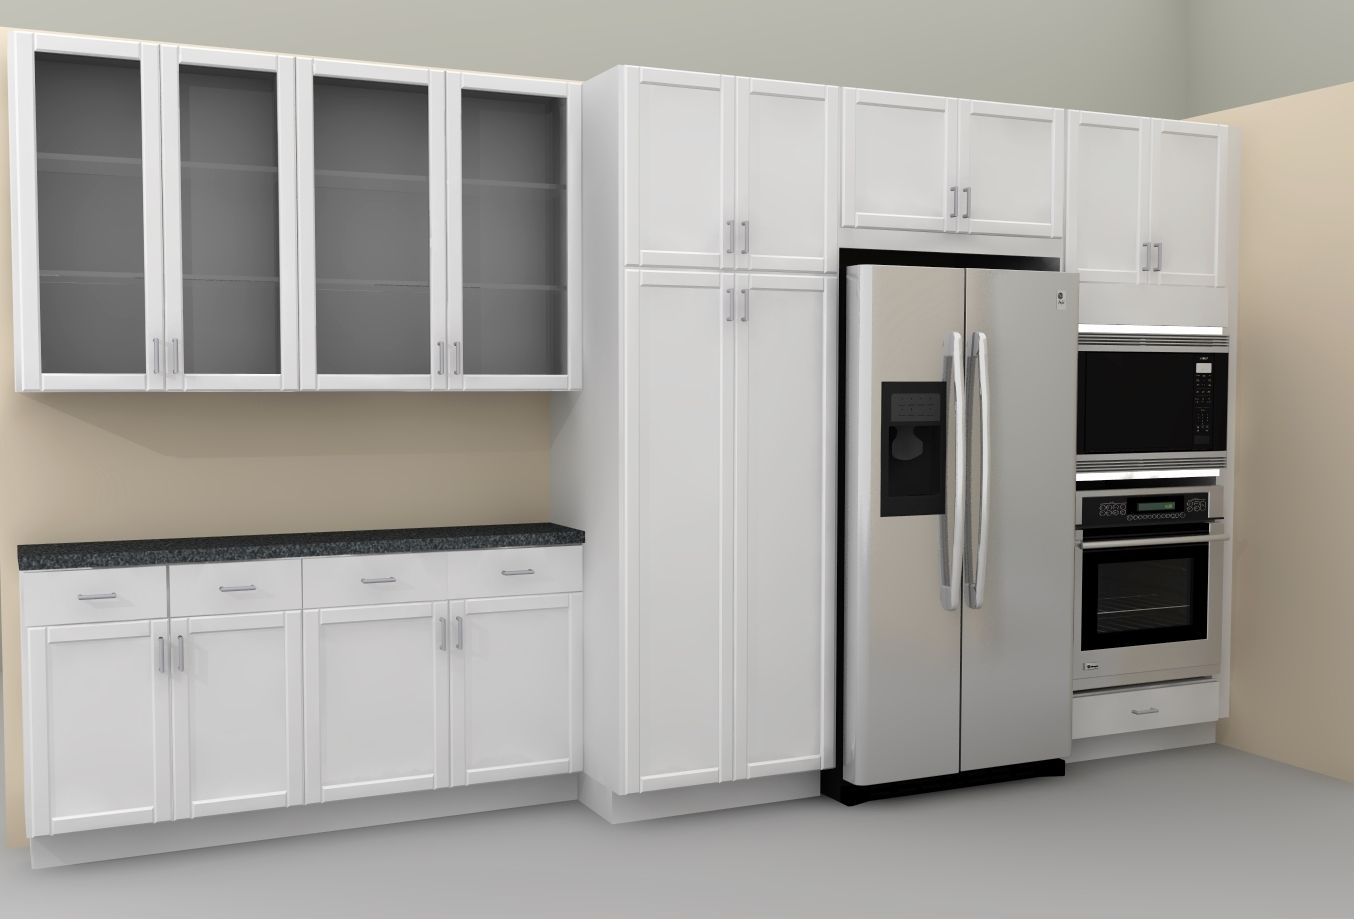 Ikea Kitchen Cabinets With Glass Doors Pantry Cabinet Ikea Kitchen Pantry Cabinet Ikea Tall Kitchen Cabinets